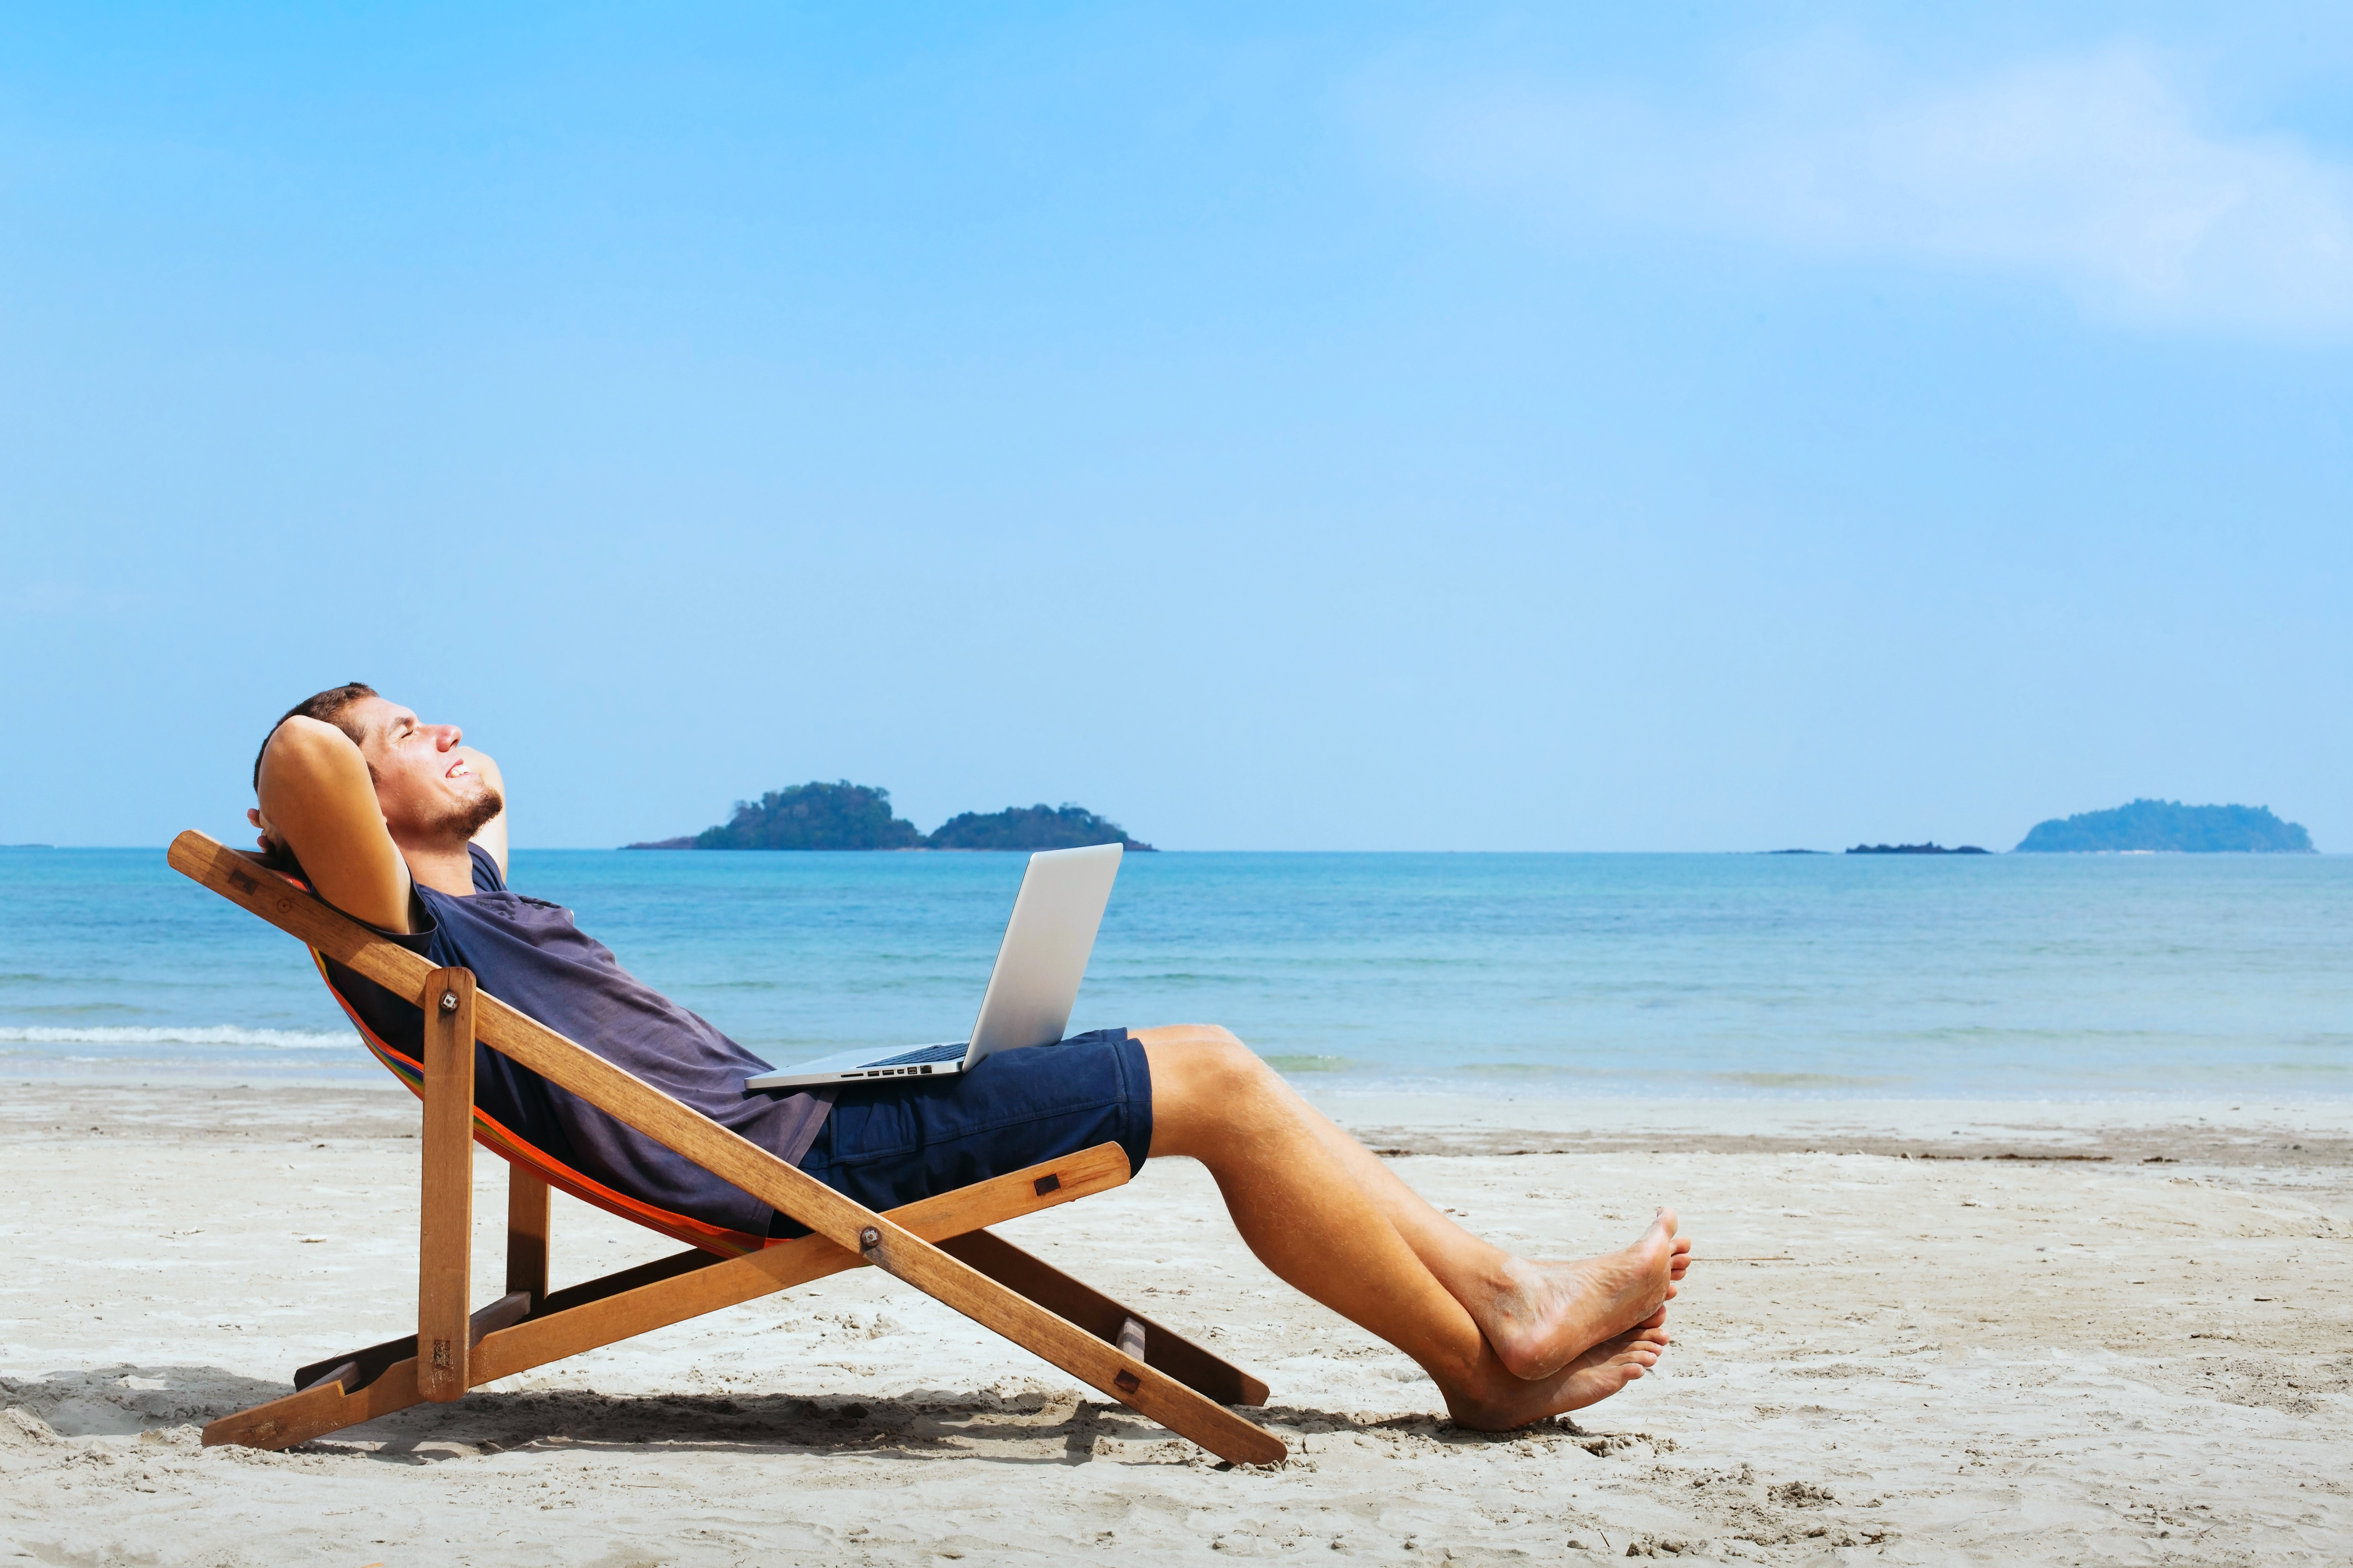 A man in shorts and t-shirt lying back in a deckchair on a white sandy beach with a laptop on his lap.